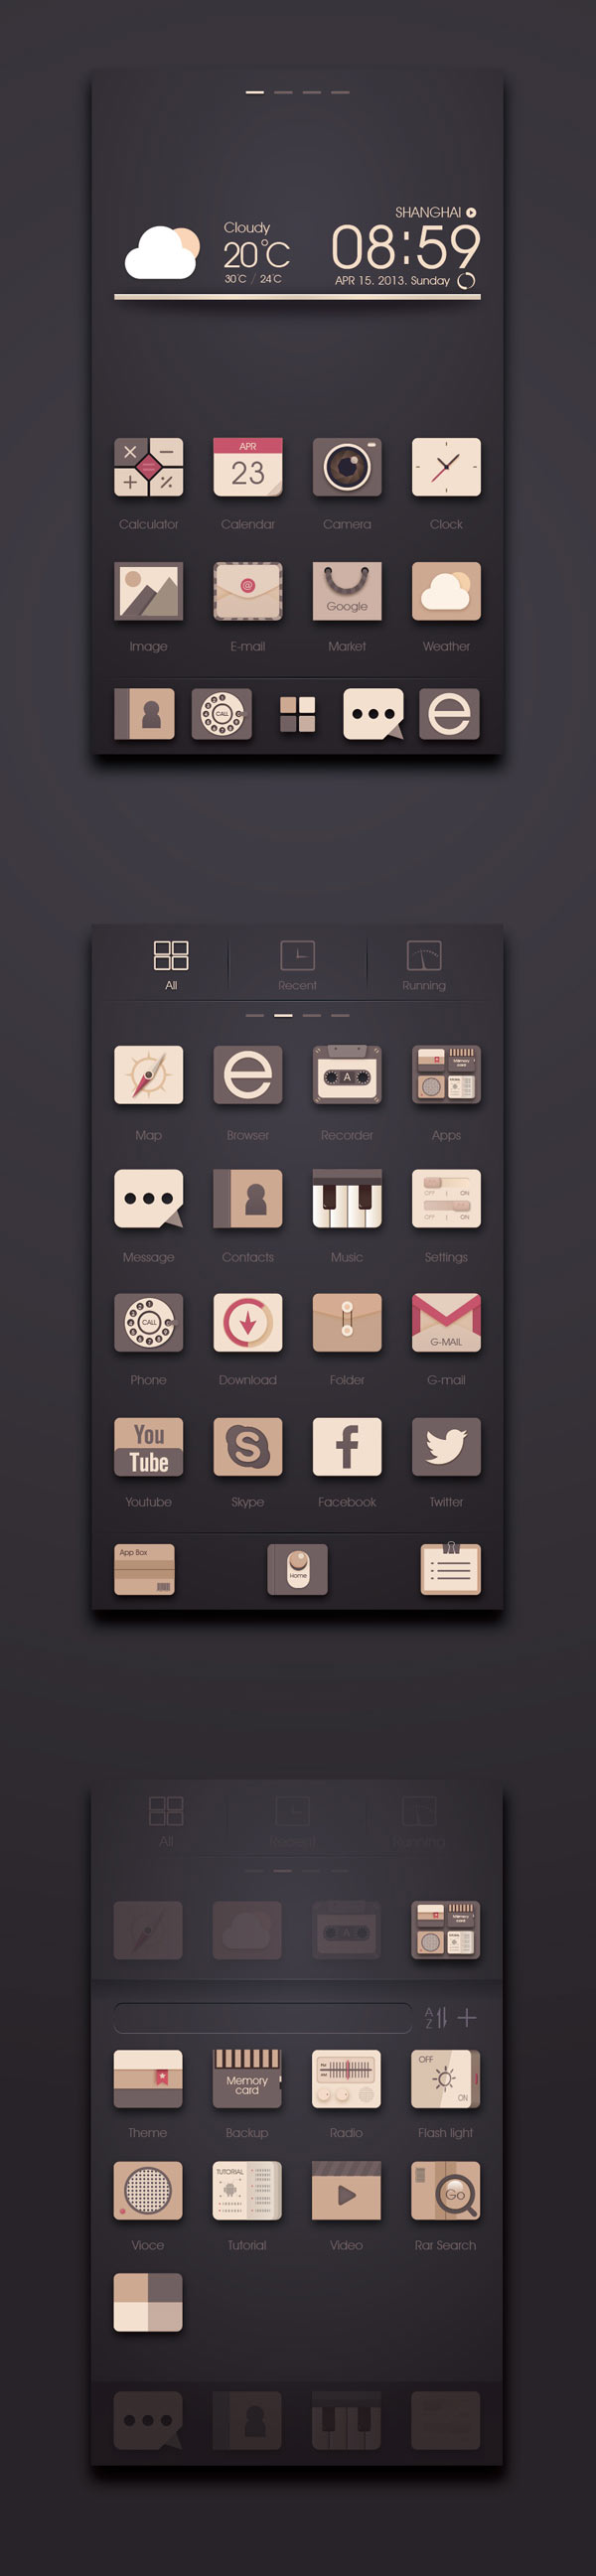 User Interface Design by Kindesign